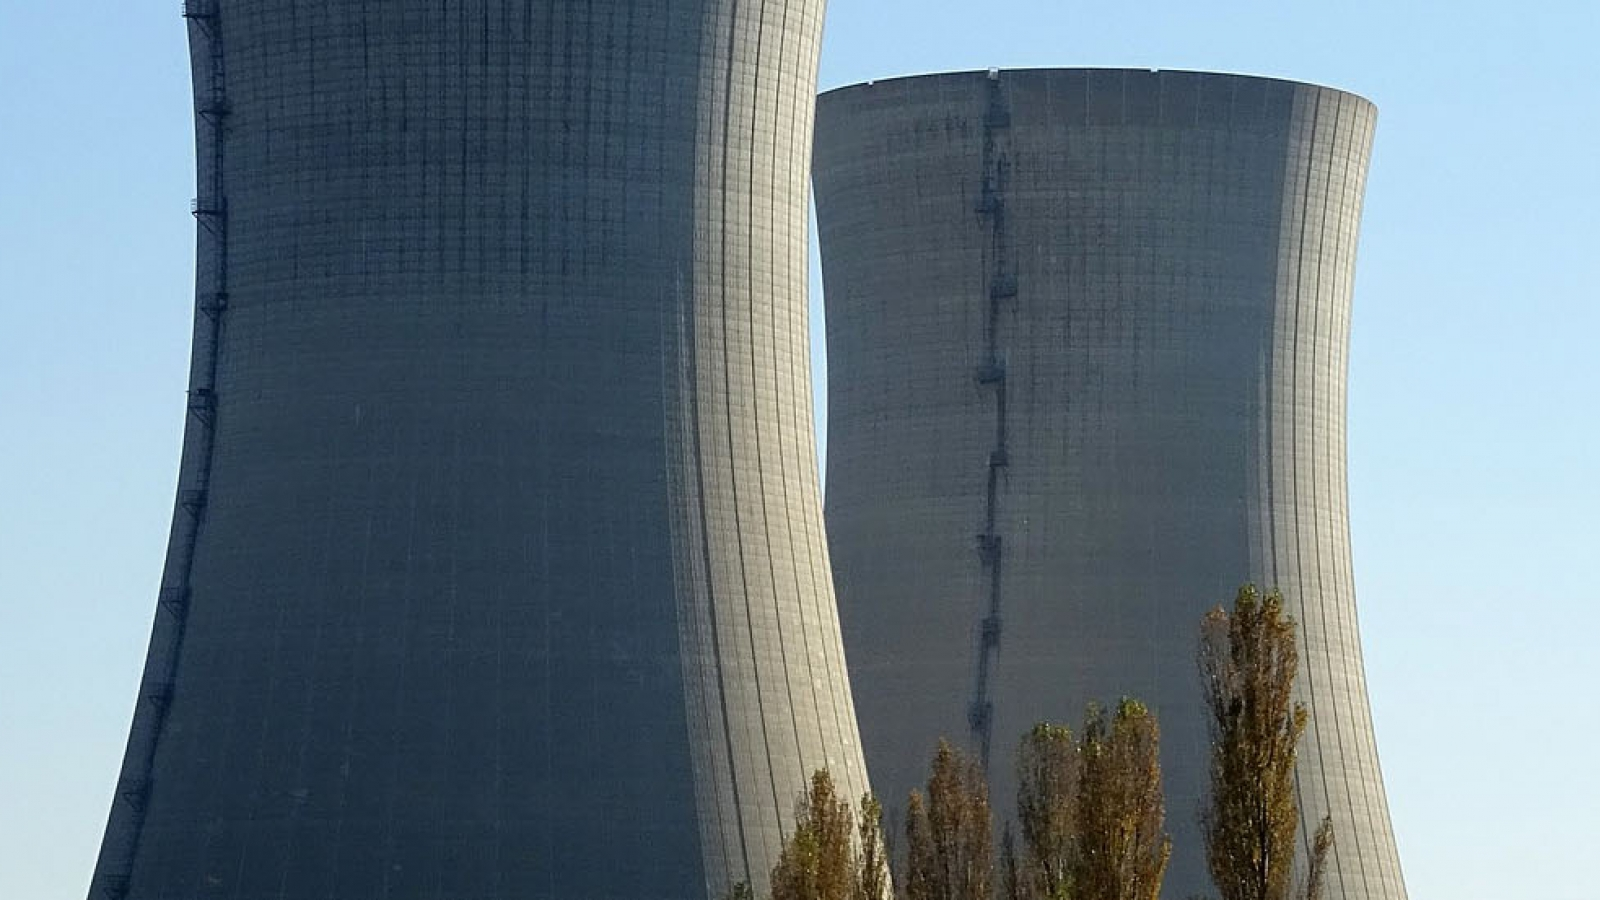 nuclear-power-plant-2854866_1920_header